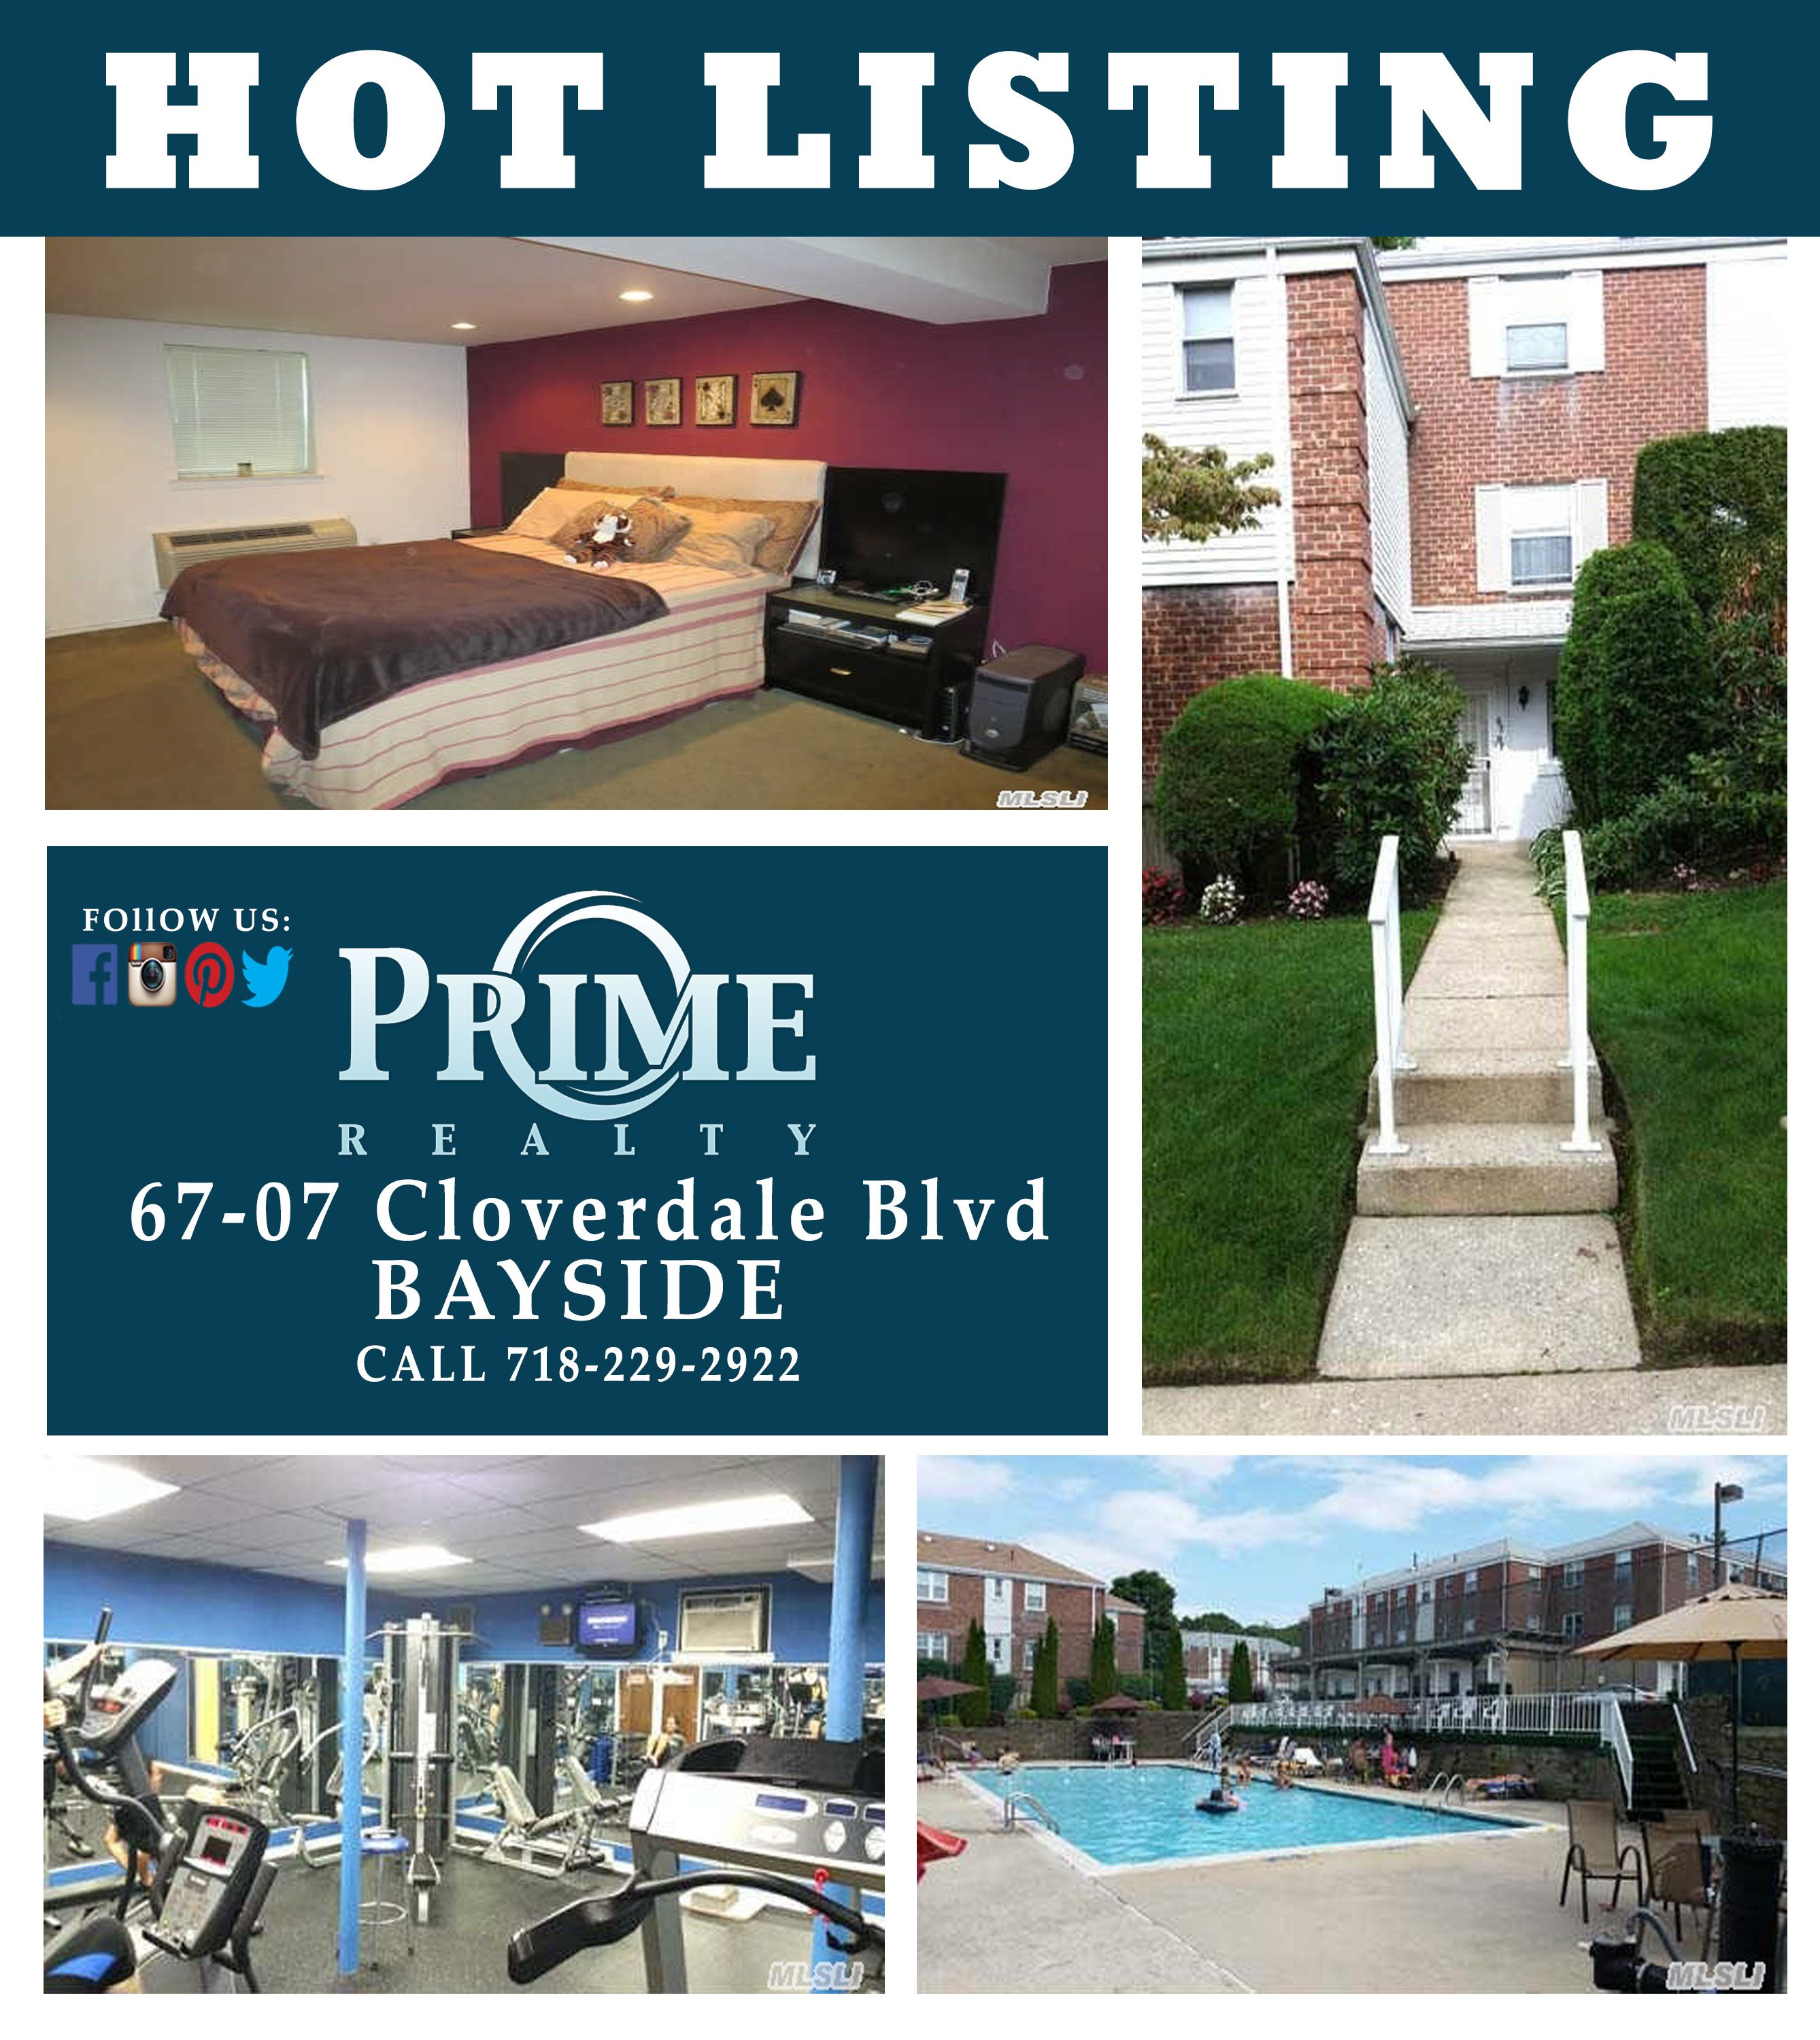 We Have A Hot Listing In Bayside Ny Great 1 Bedroom Condo In